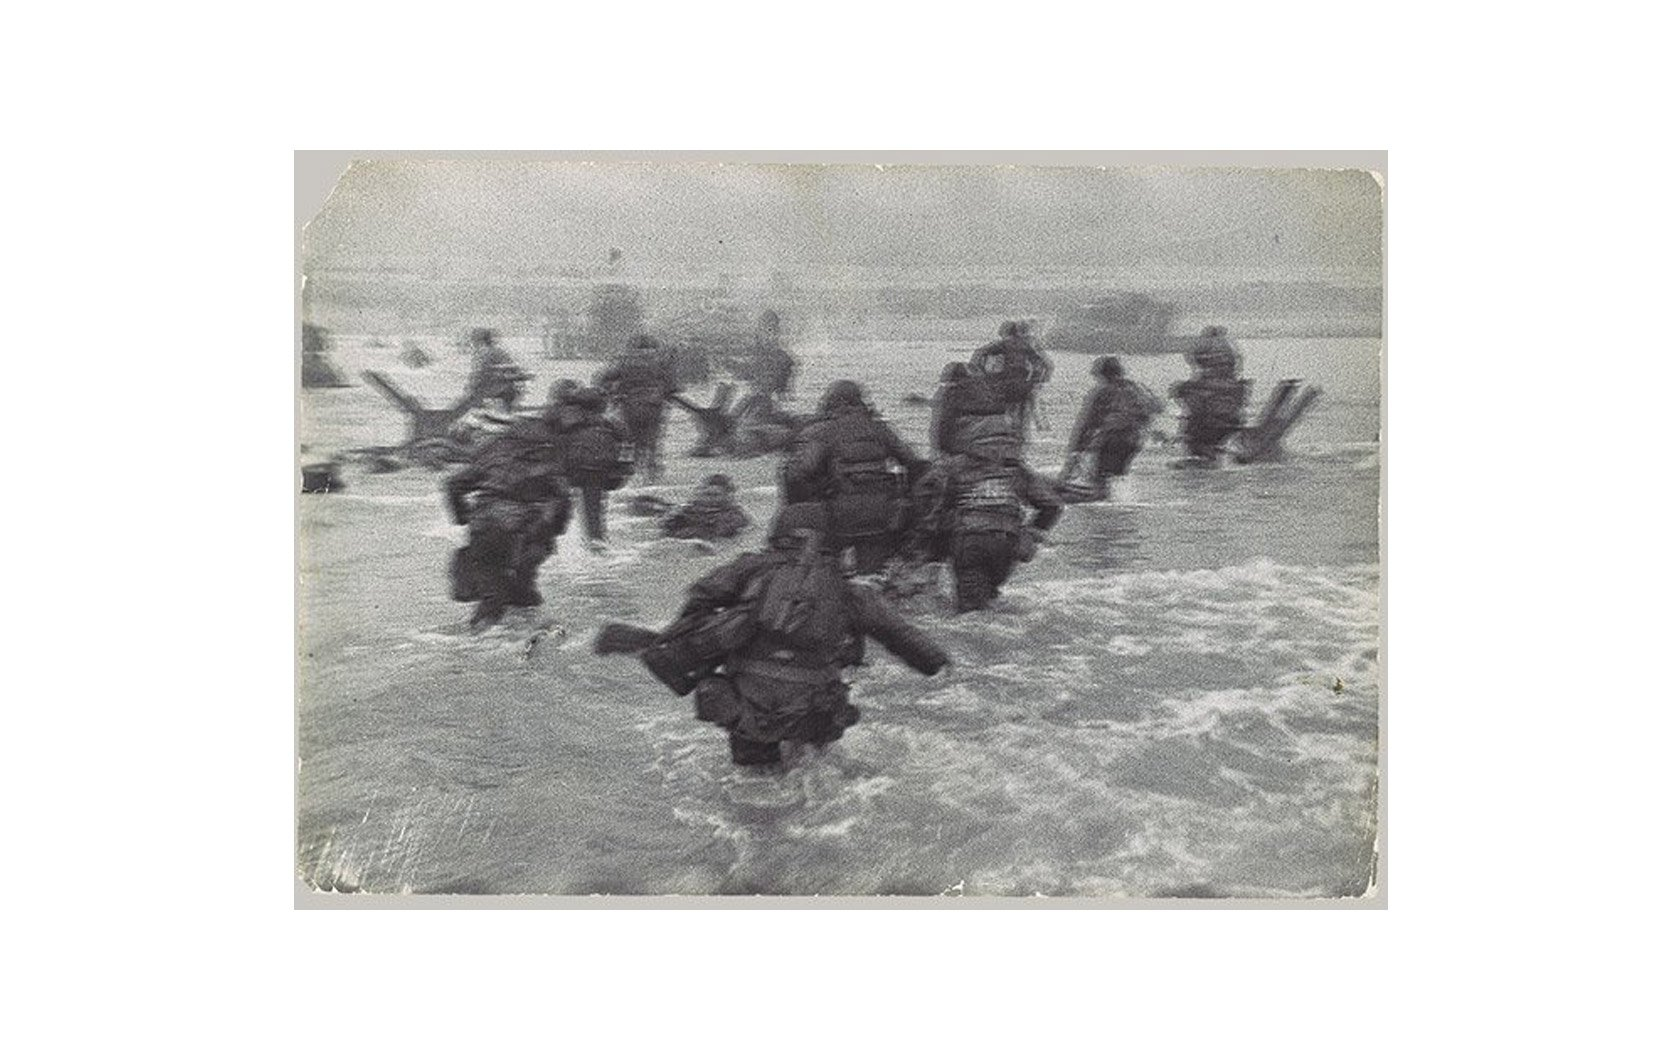 d-day-troops-2